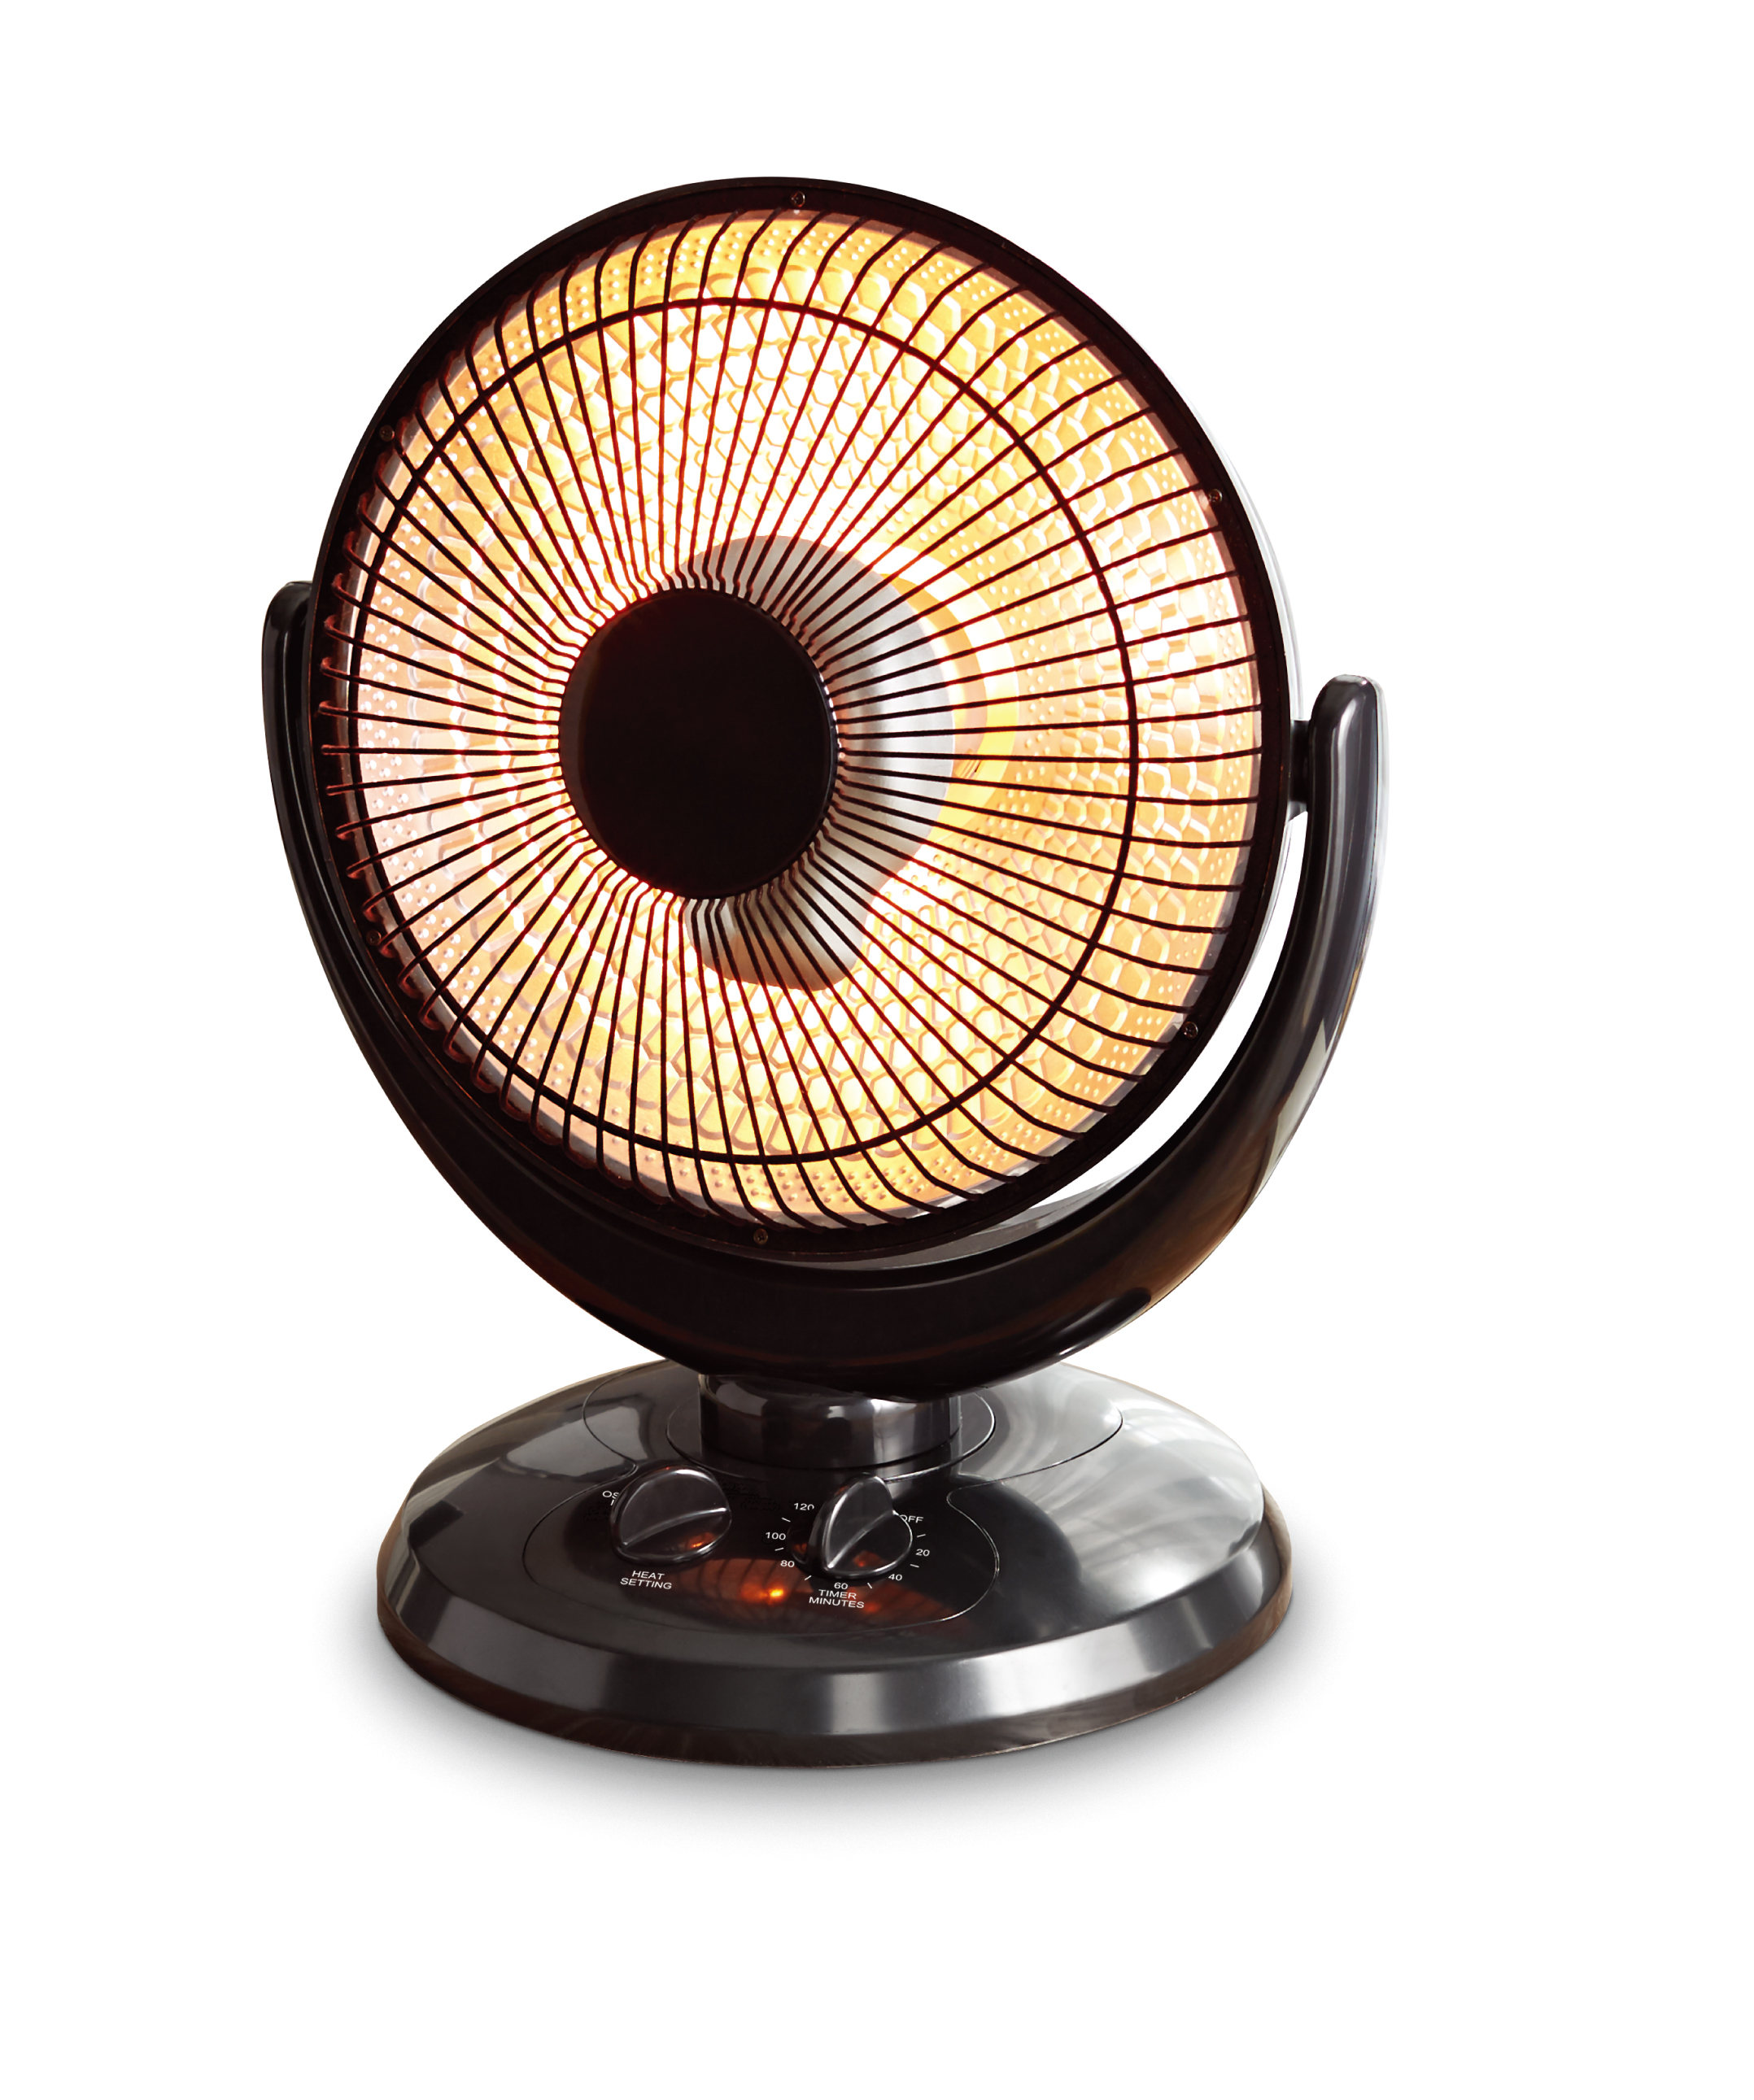 Mainstays Infrared Oscillating Dish Heater